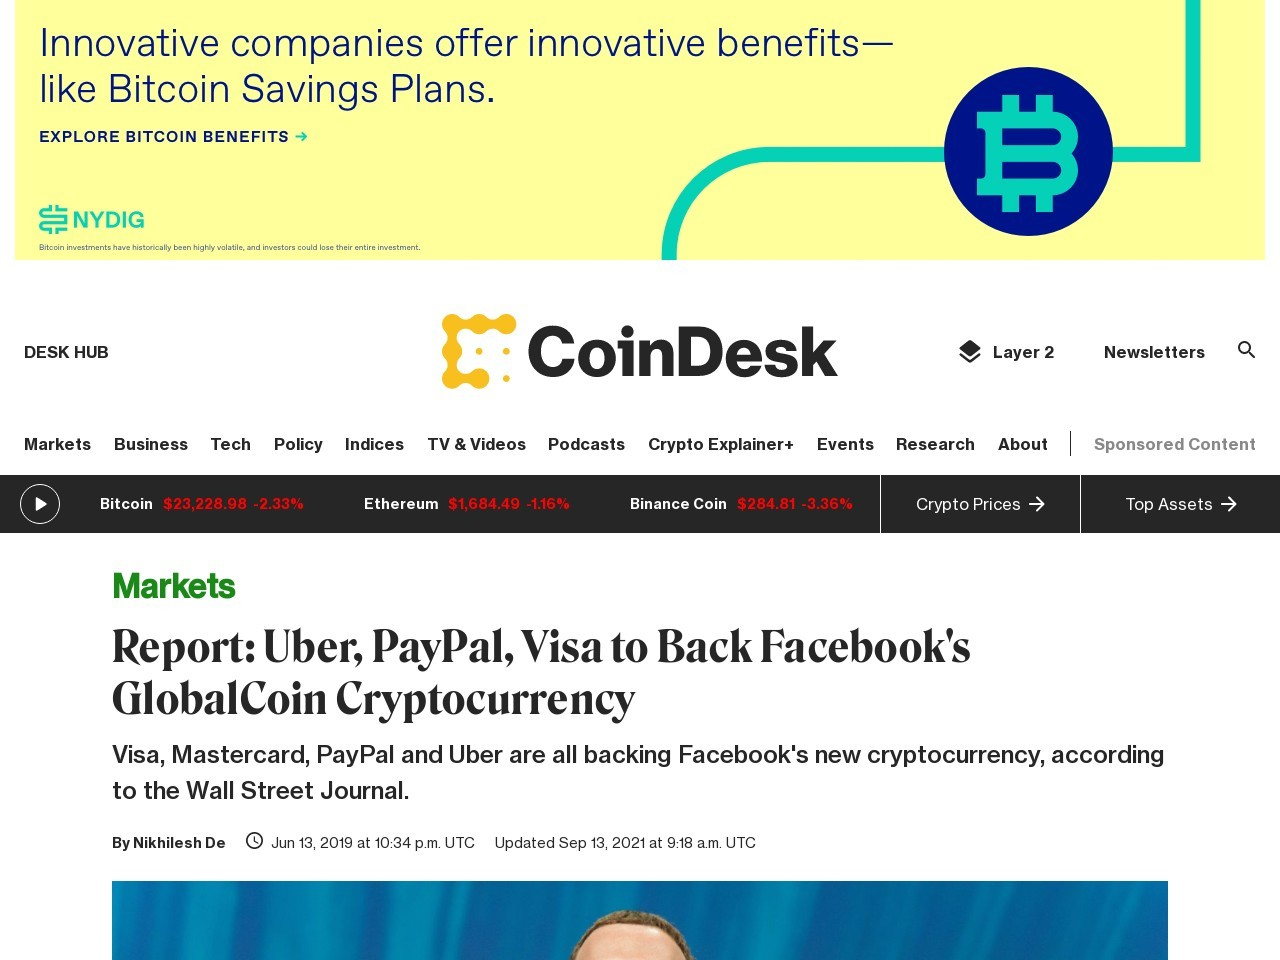 Report: Uber, PayPal, Visa to Back Facebook's GlobalCoin Cryptocurrency